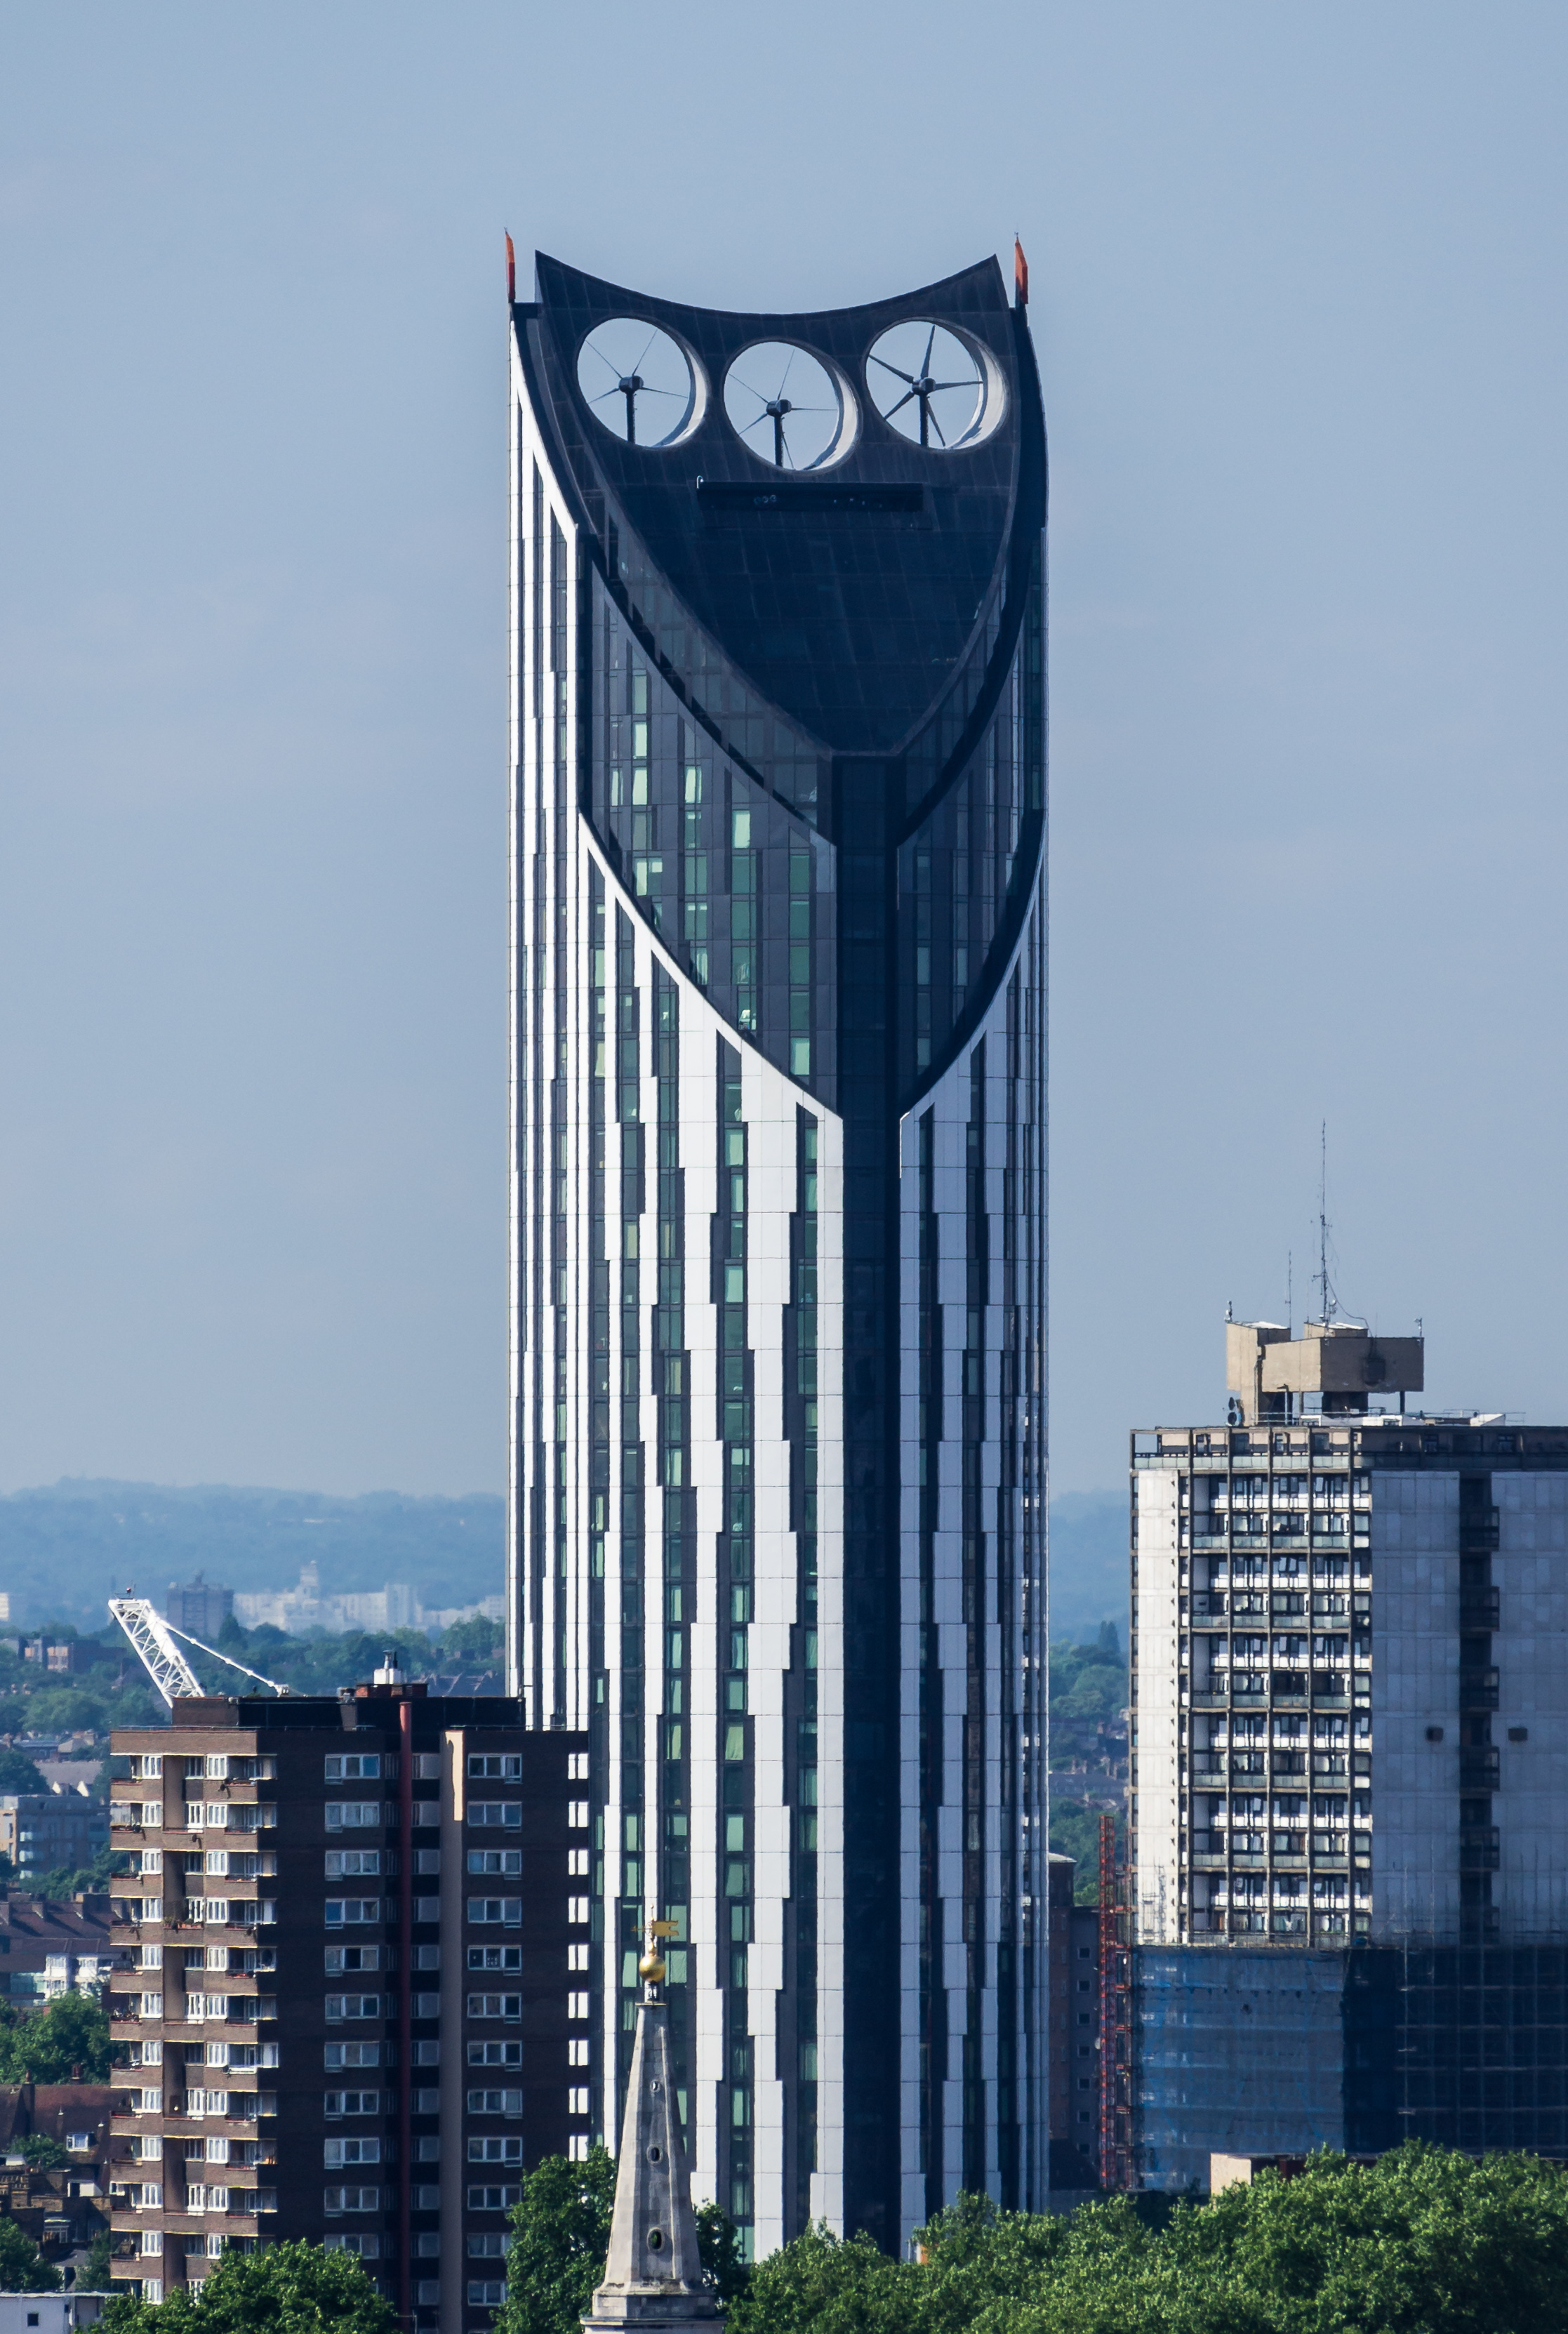 London Building With Three Fans On Top